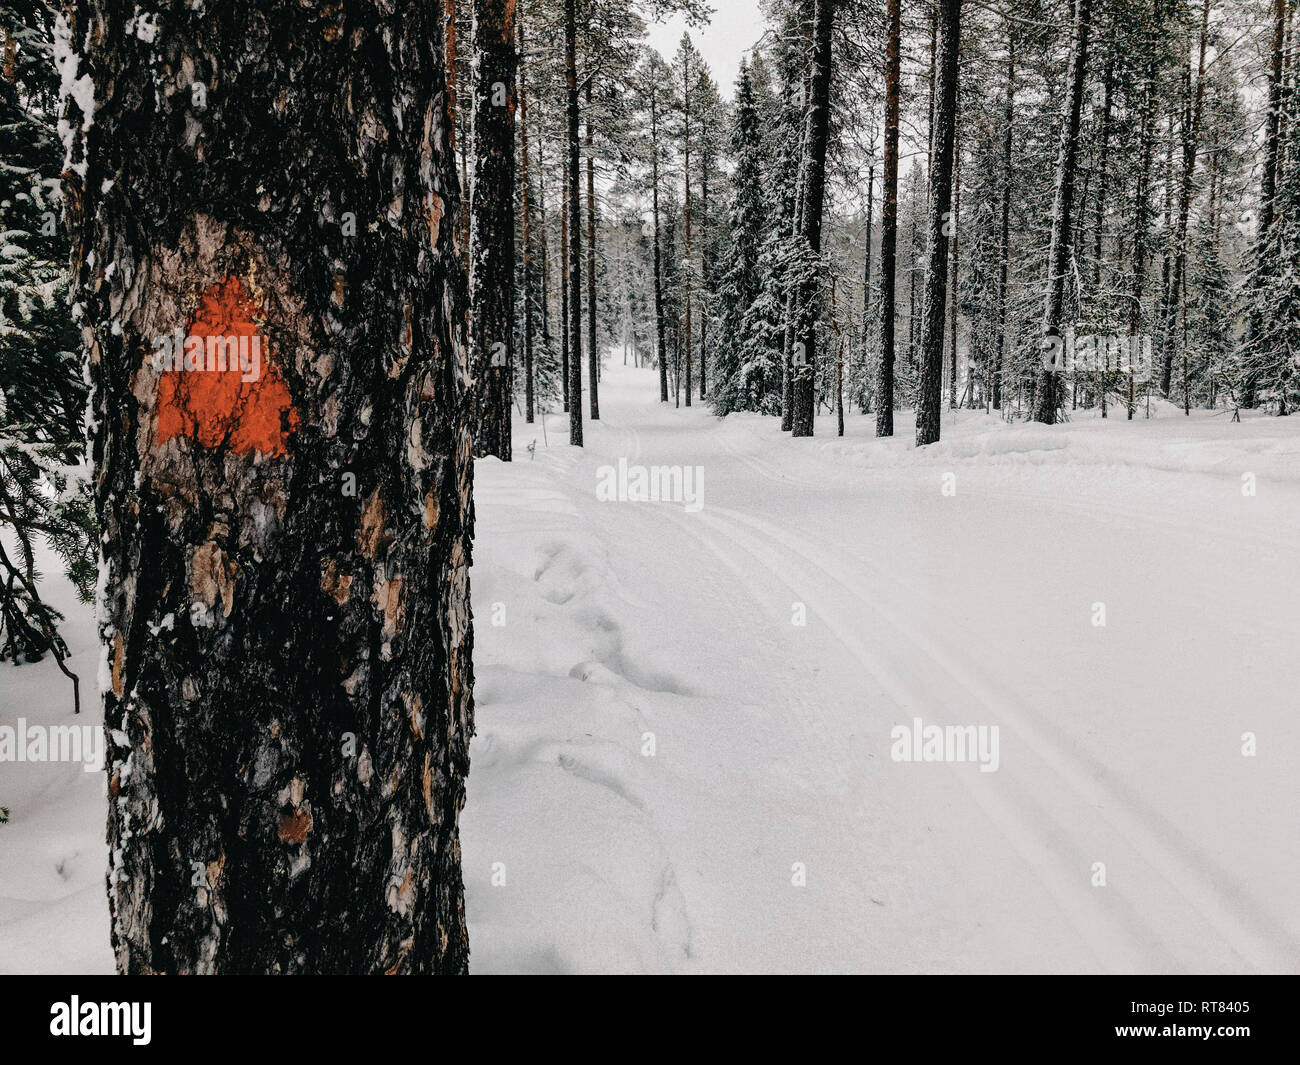 Finland, Lapland, Cross-County Ski Run in Forest - Stock Image